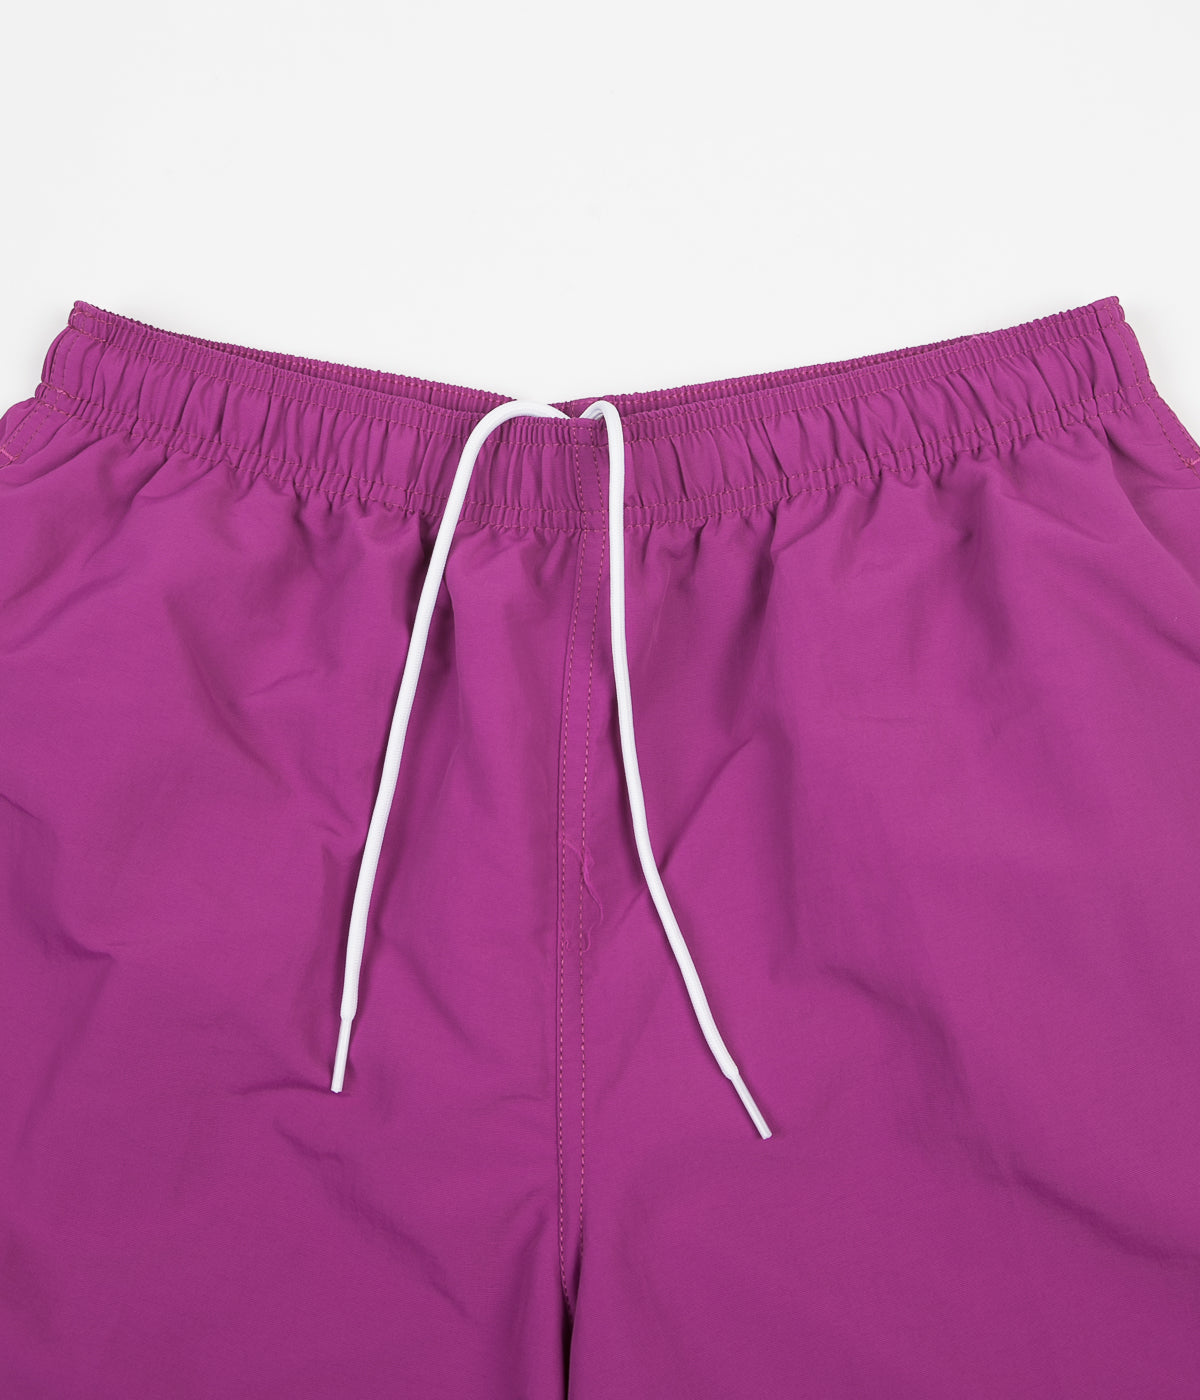 Stussy Stock Water Shorts - Berry